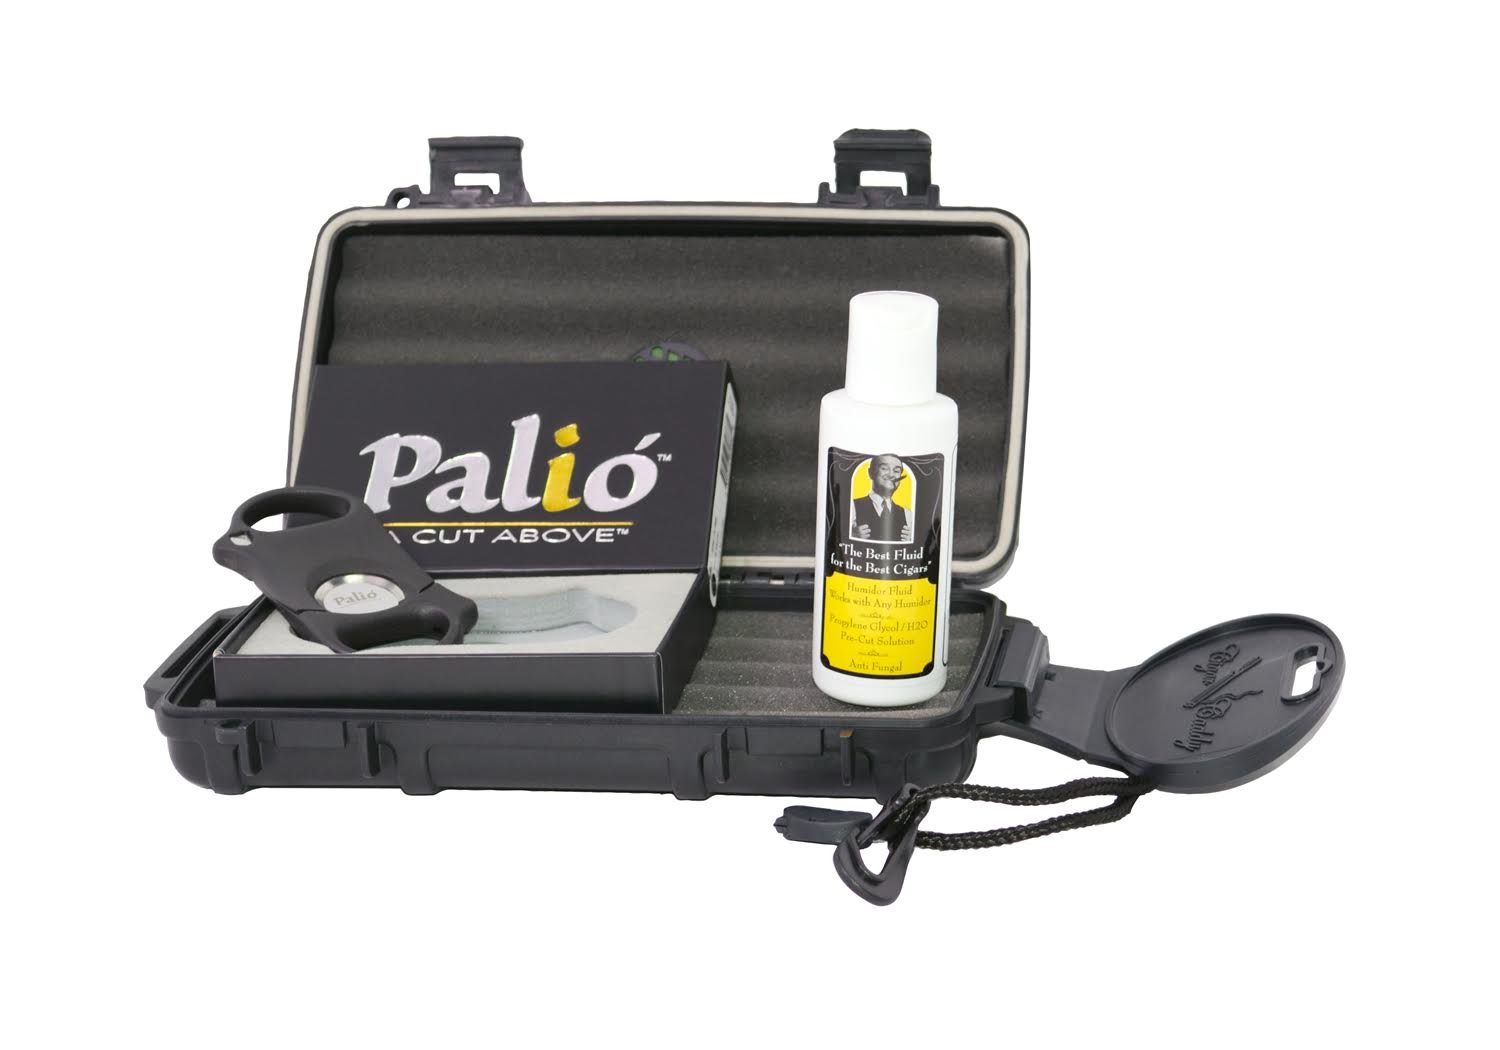 Cigar Caddy 5 Cigar Waterproof Travel Humidor with Palio Cigar Cutter & Humidifier Solution (Caddy, Cutter & Solution)